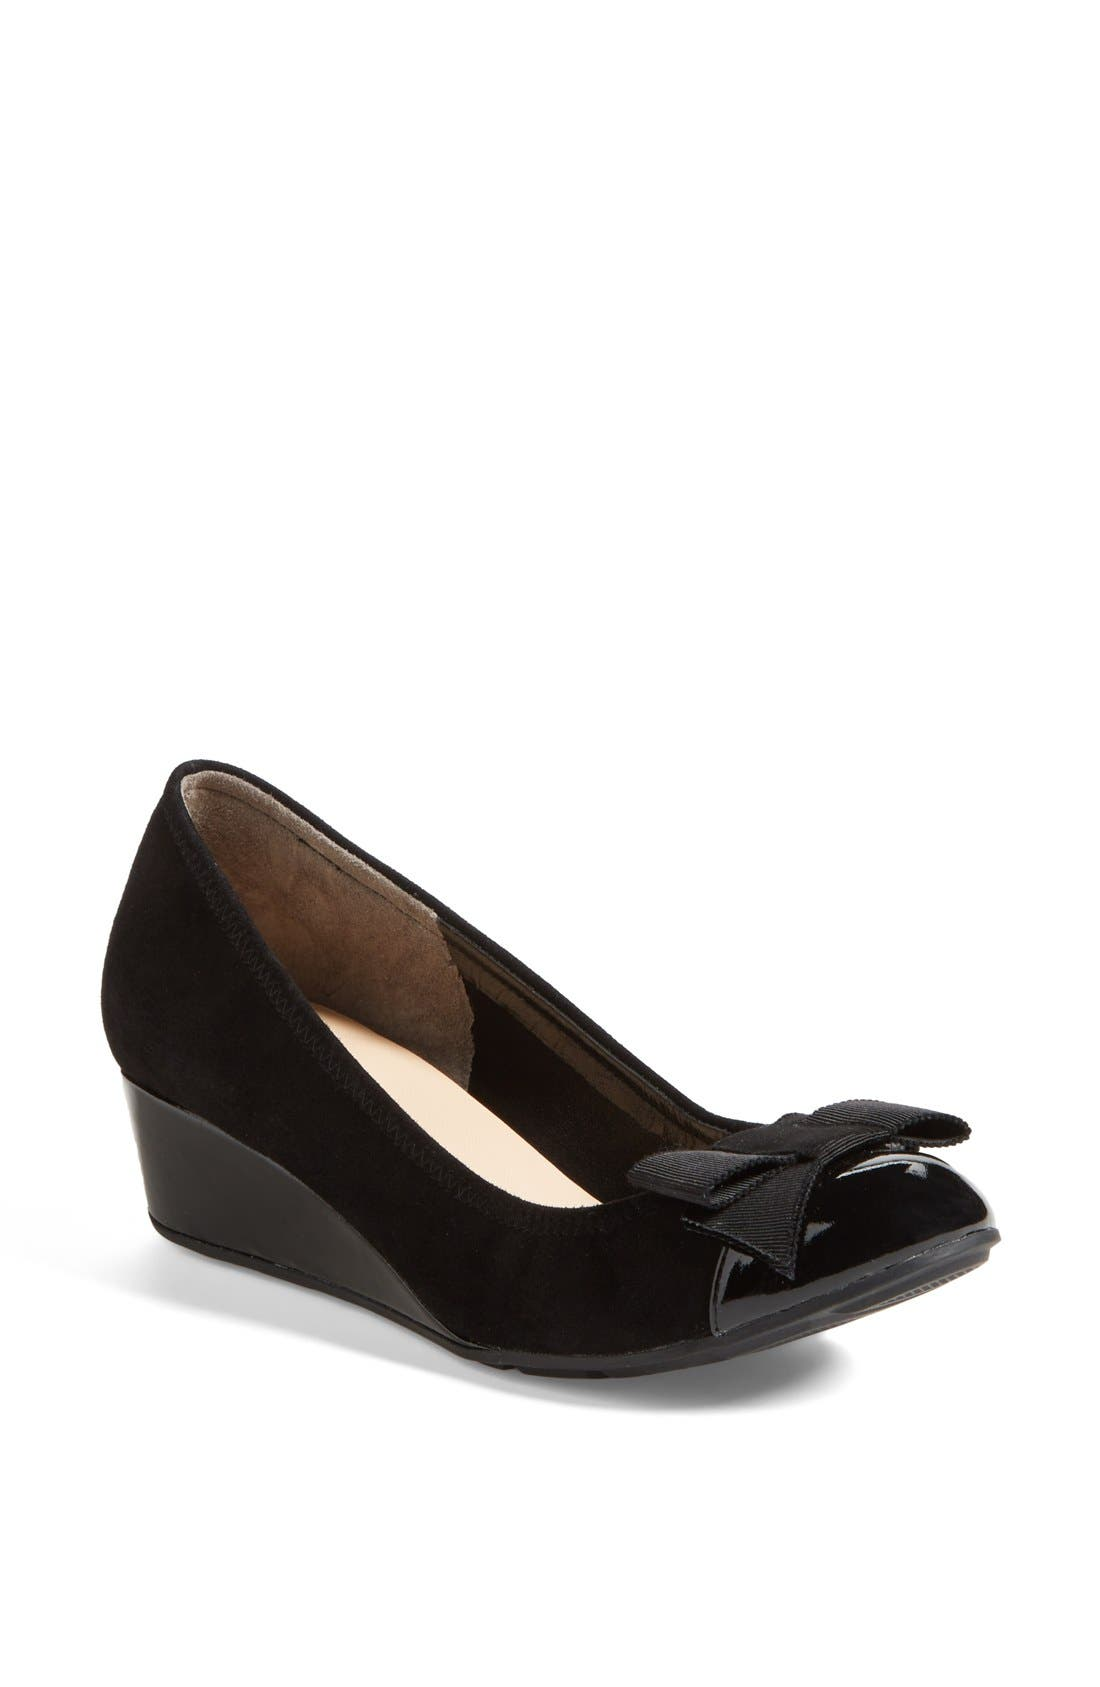 Alternate Image 1 Selected - Cole Haan 'Air Tali' Wedge Pump (Women)